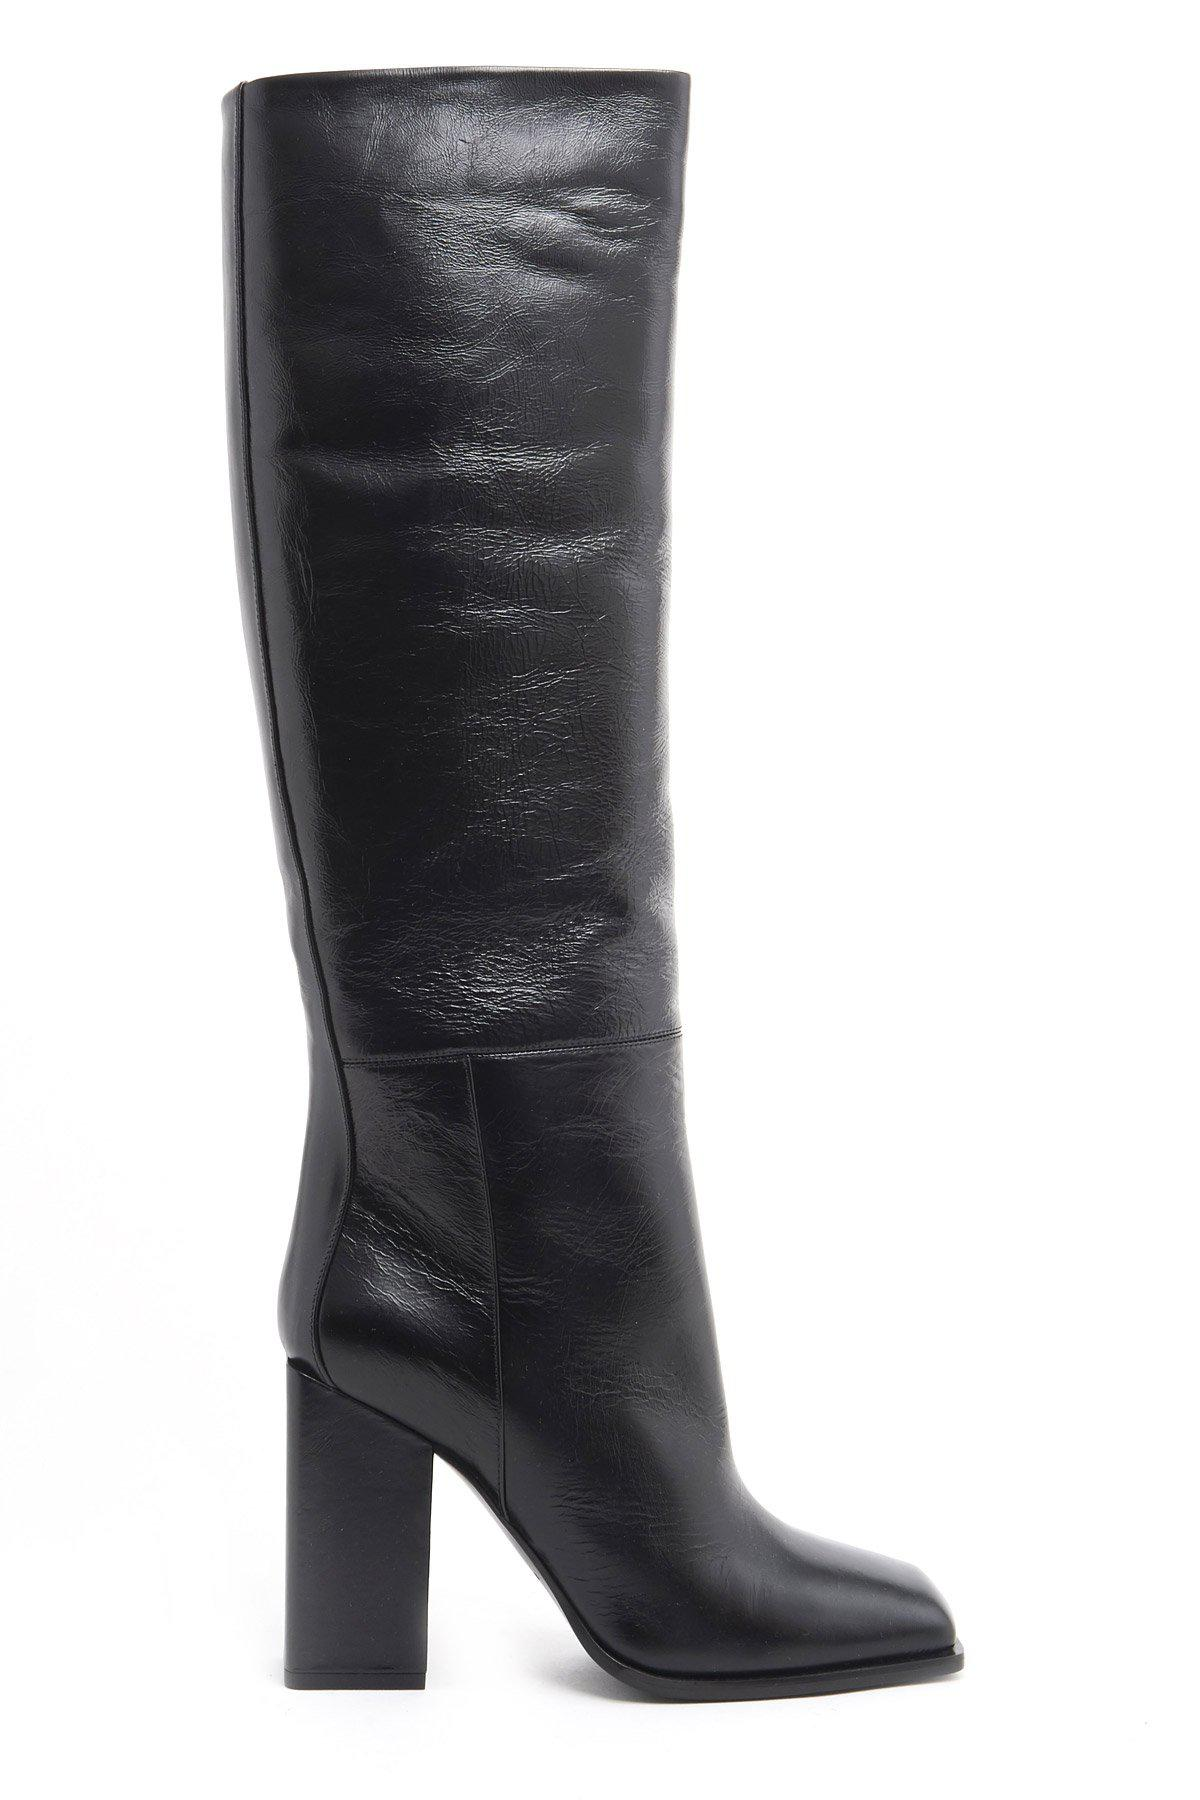 76aa9a9ac34 Lyst - Saint Laurent Jodie Heeled Boots in Black